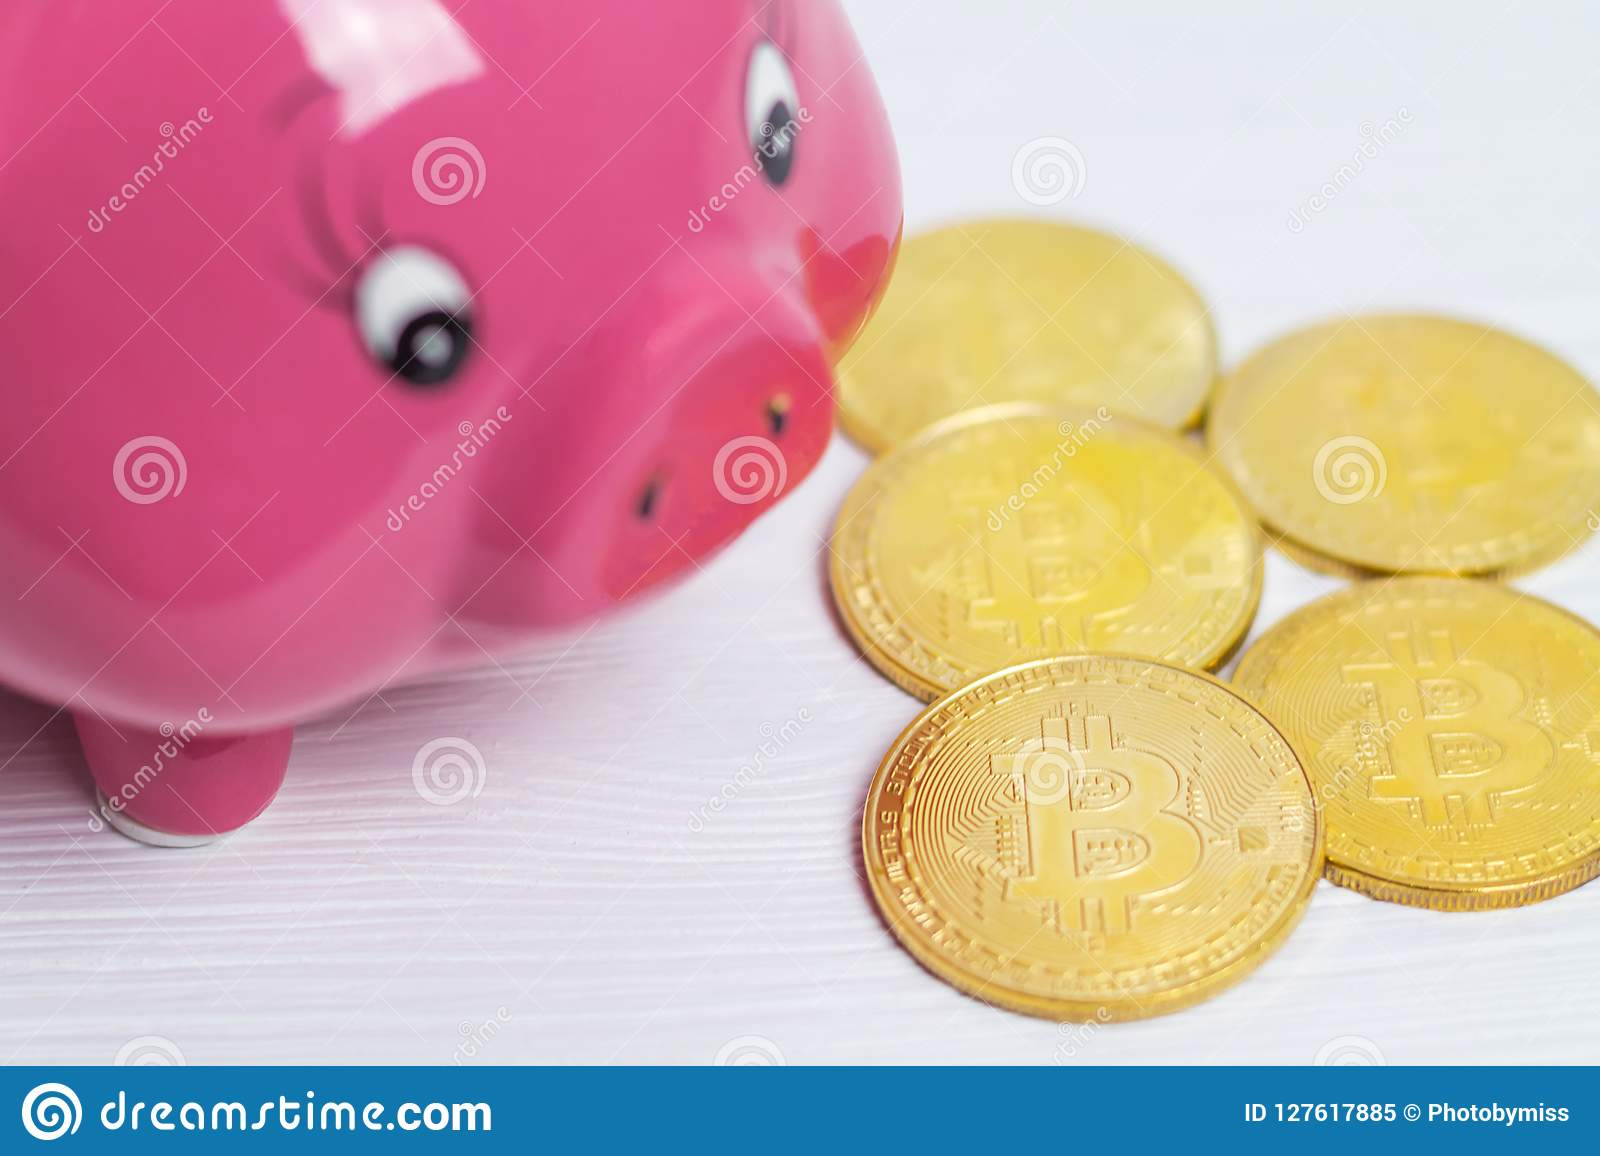 Pig Bank And A Drop Gold Bitcoins On The White Wooden Background, A